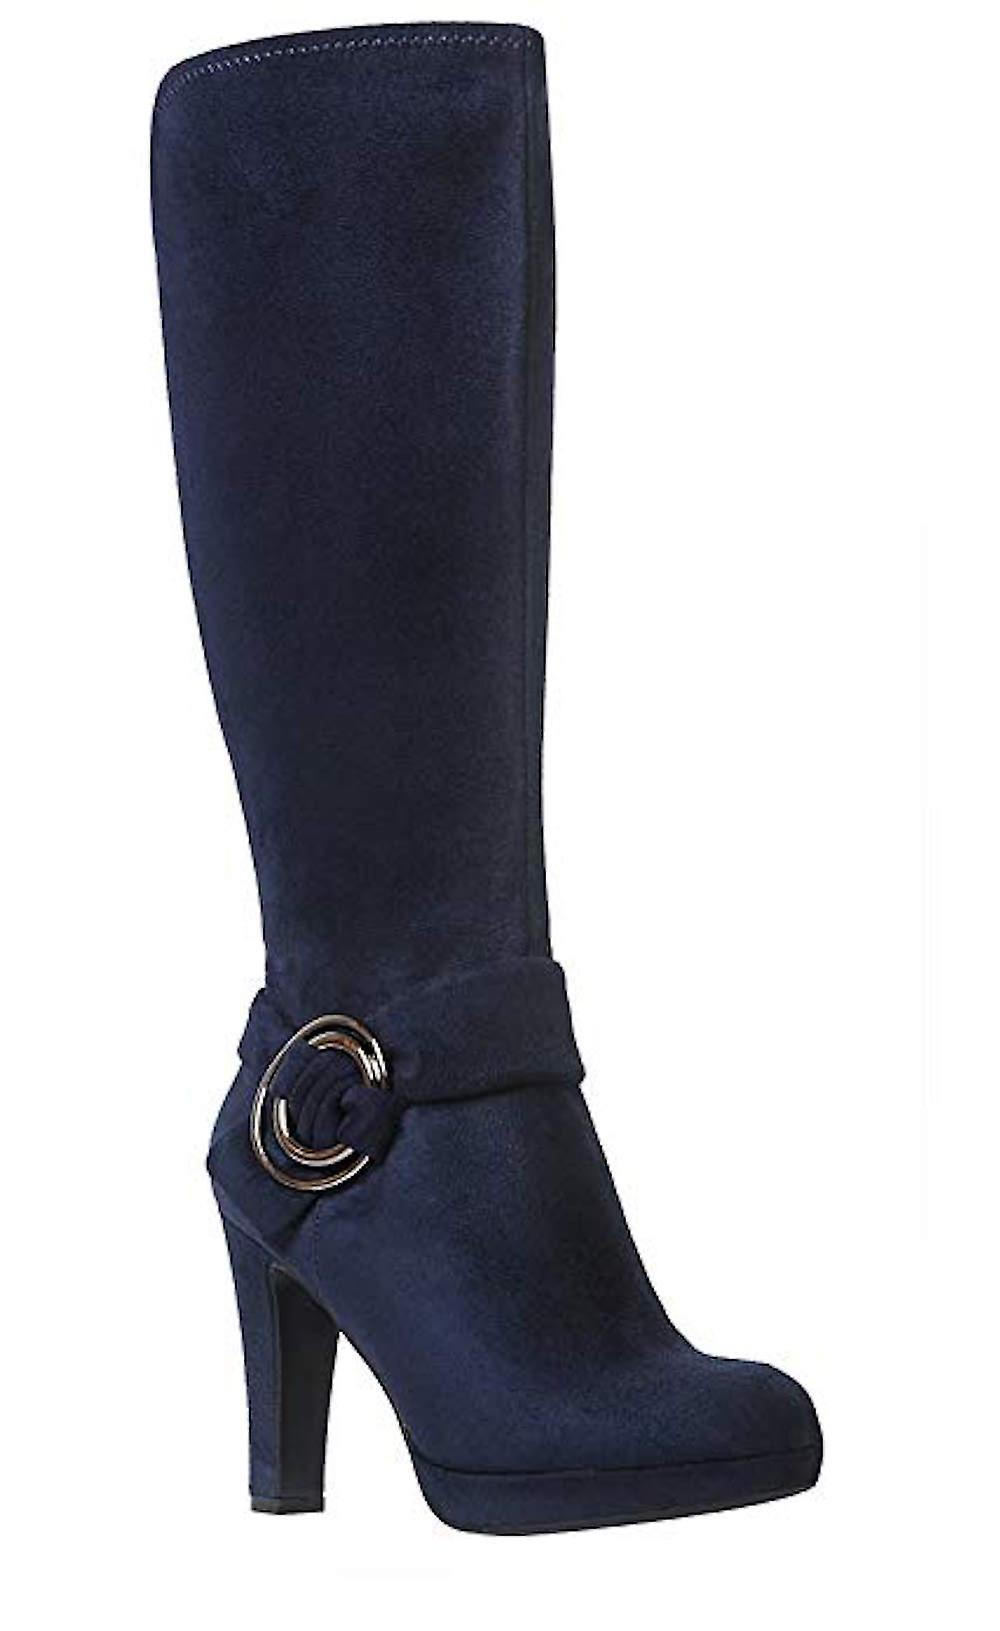 Impo Womens Owen Fabric Round Toe Knee High Fashion Boots